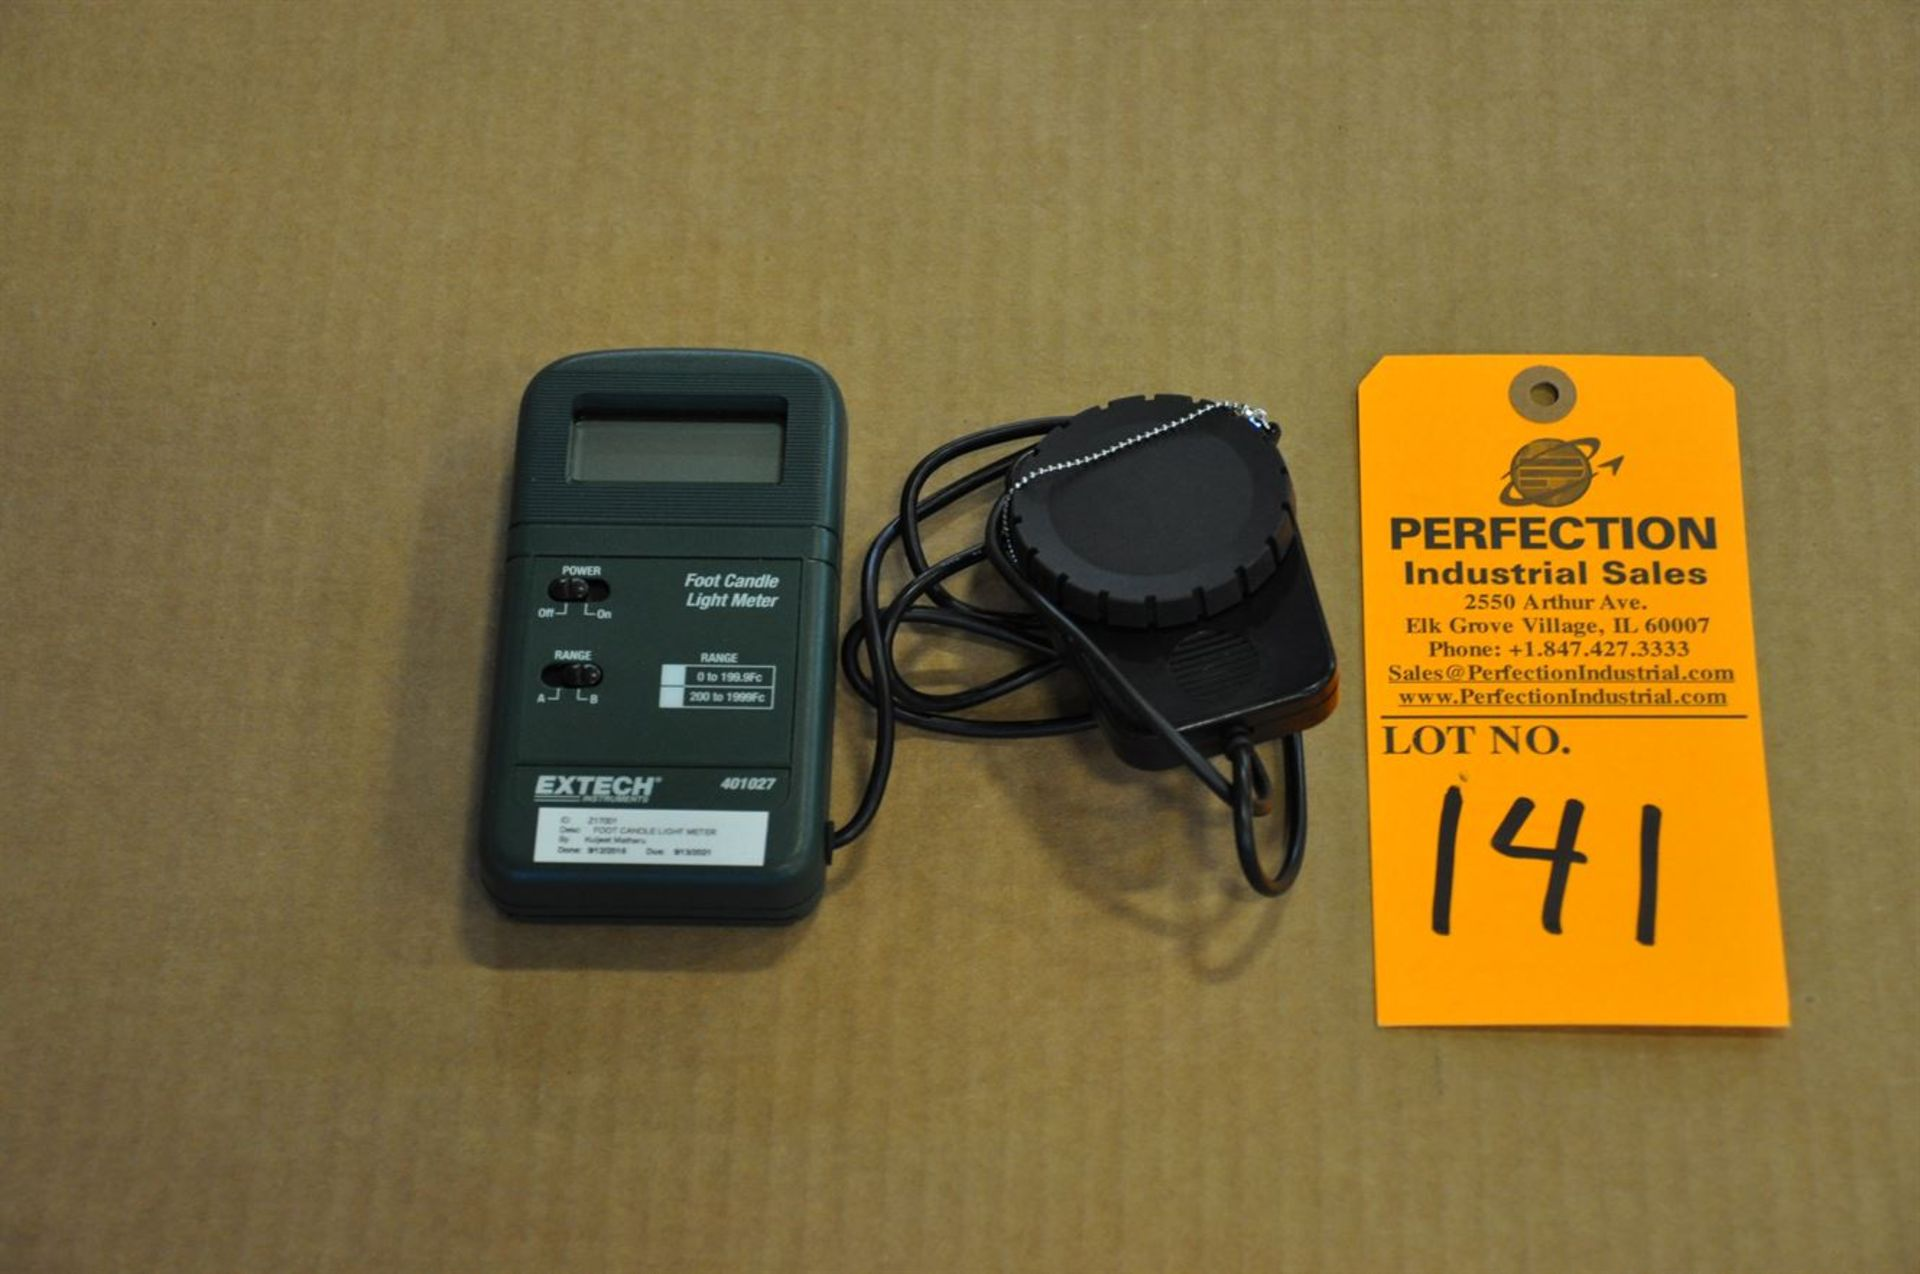 EXTECK foot candle light meter